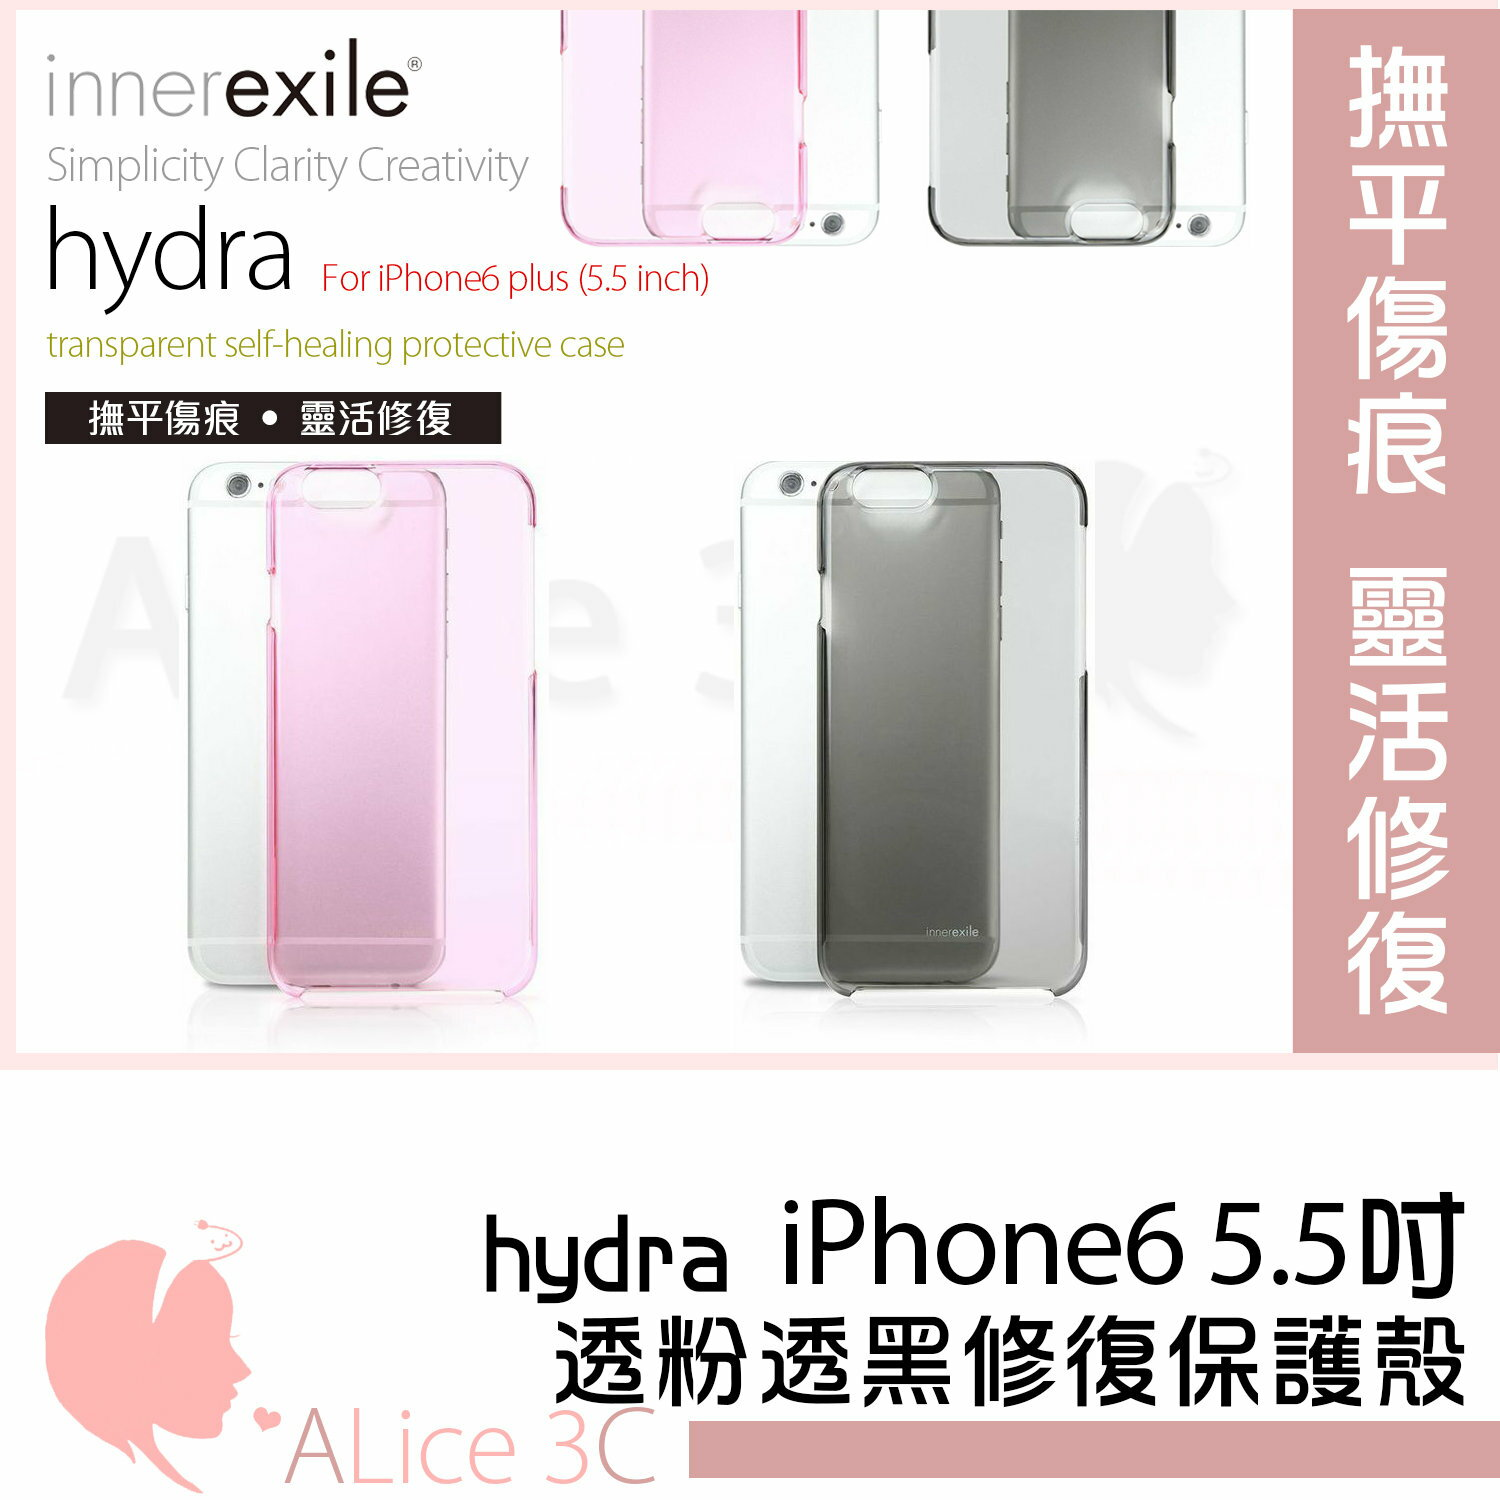 iPhone 6 Plus innerexile hydra自我修復保護殼 【C-I6-P25】 微刮30秒修復 Alice3C